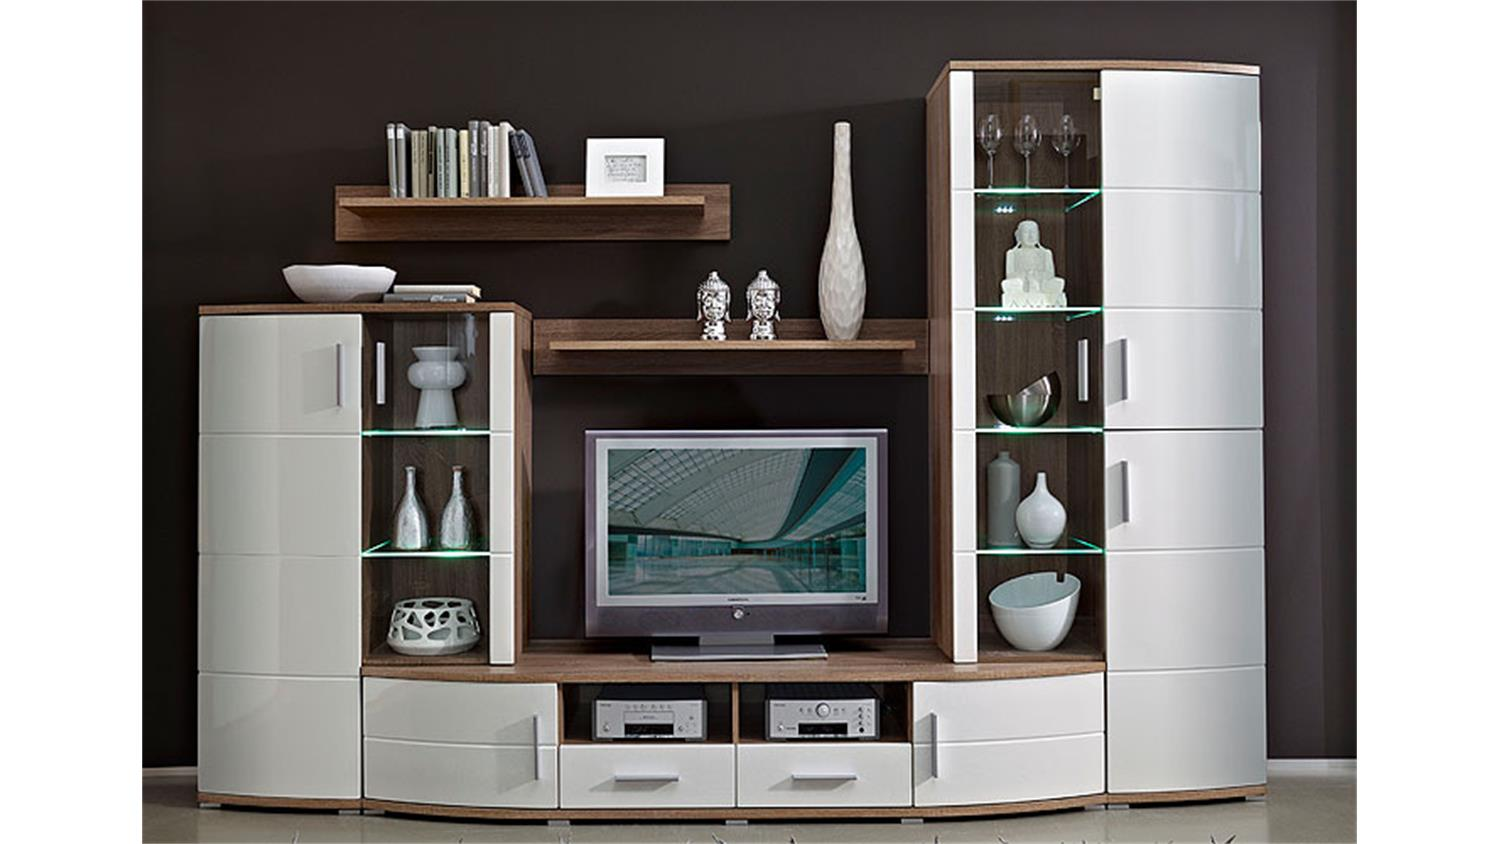 wohnwand sana wei hochglanz mdf sonoma eiche inkl led. Black Bedroom Furniture Sets. Home Design Ideas